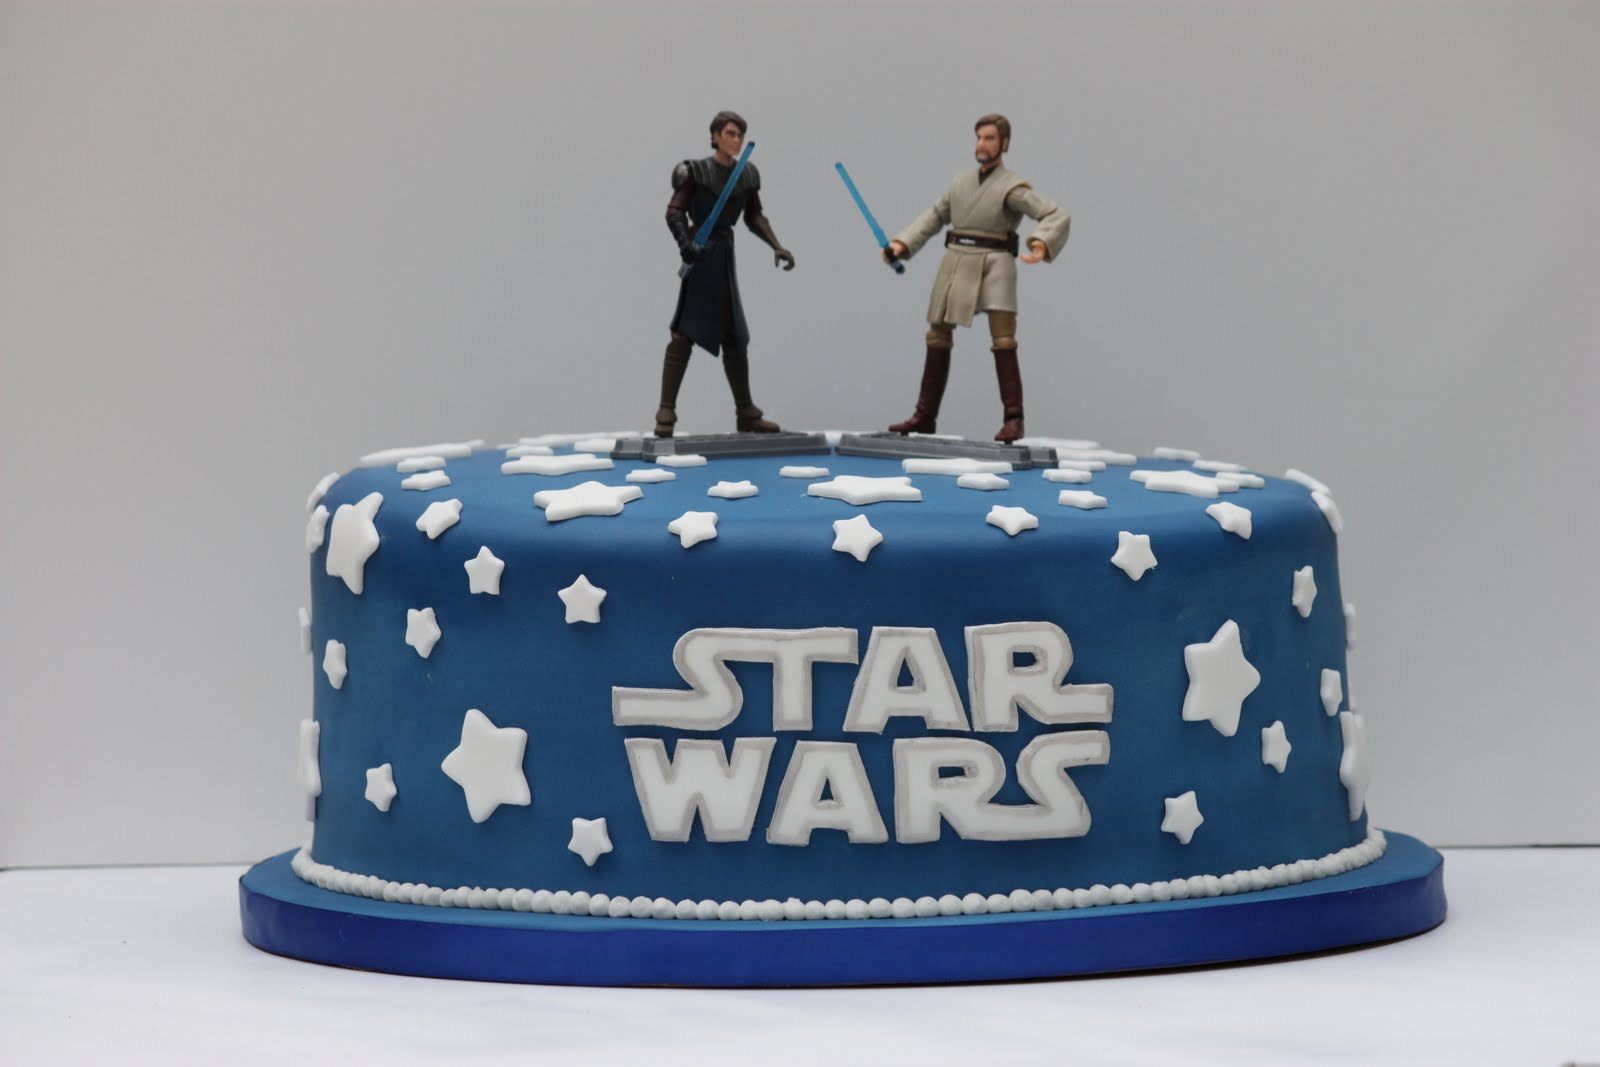 Whimsical By Design Ryans Star Wars Birthday Cake